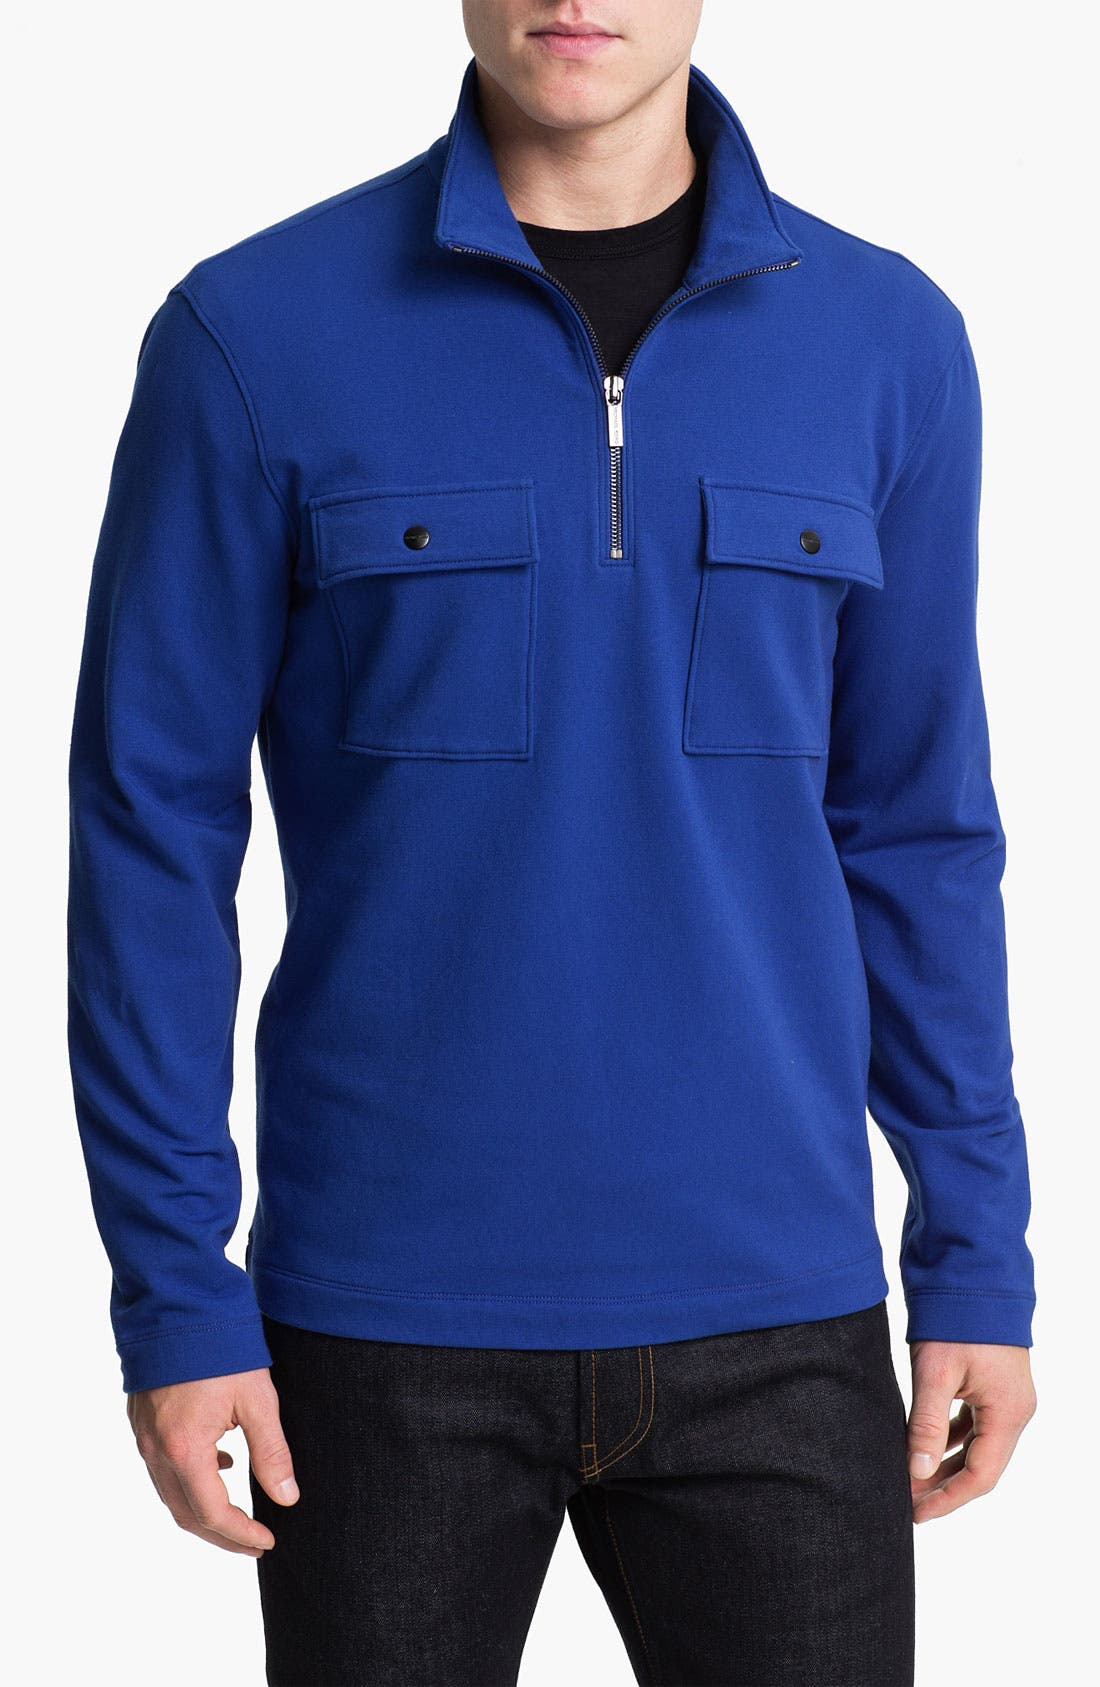 Alternate Image 1 Selected - Michael Kors Half Zip Fleece Pullover